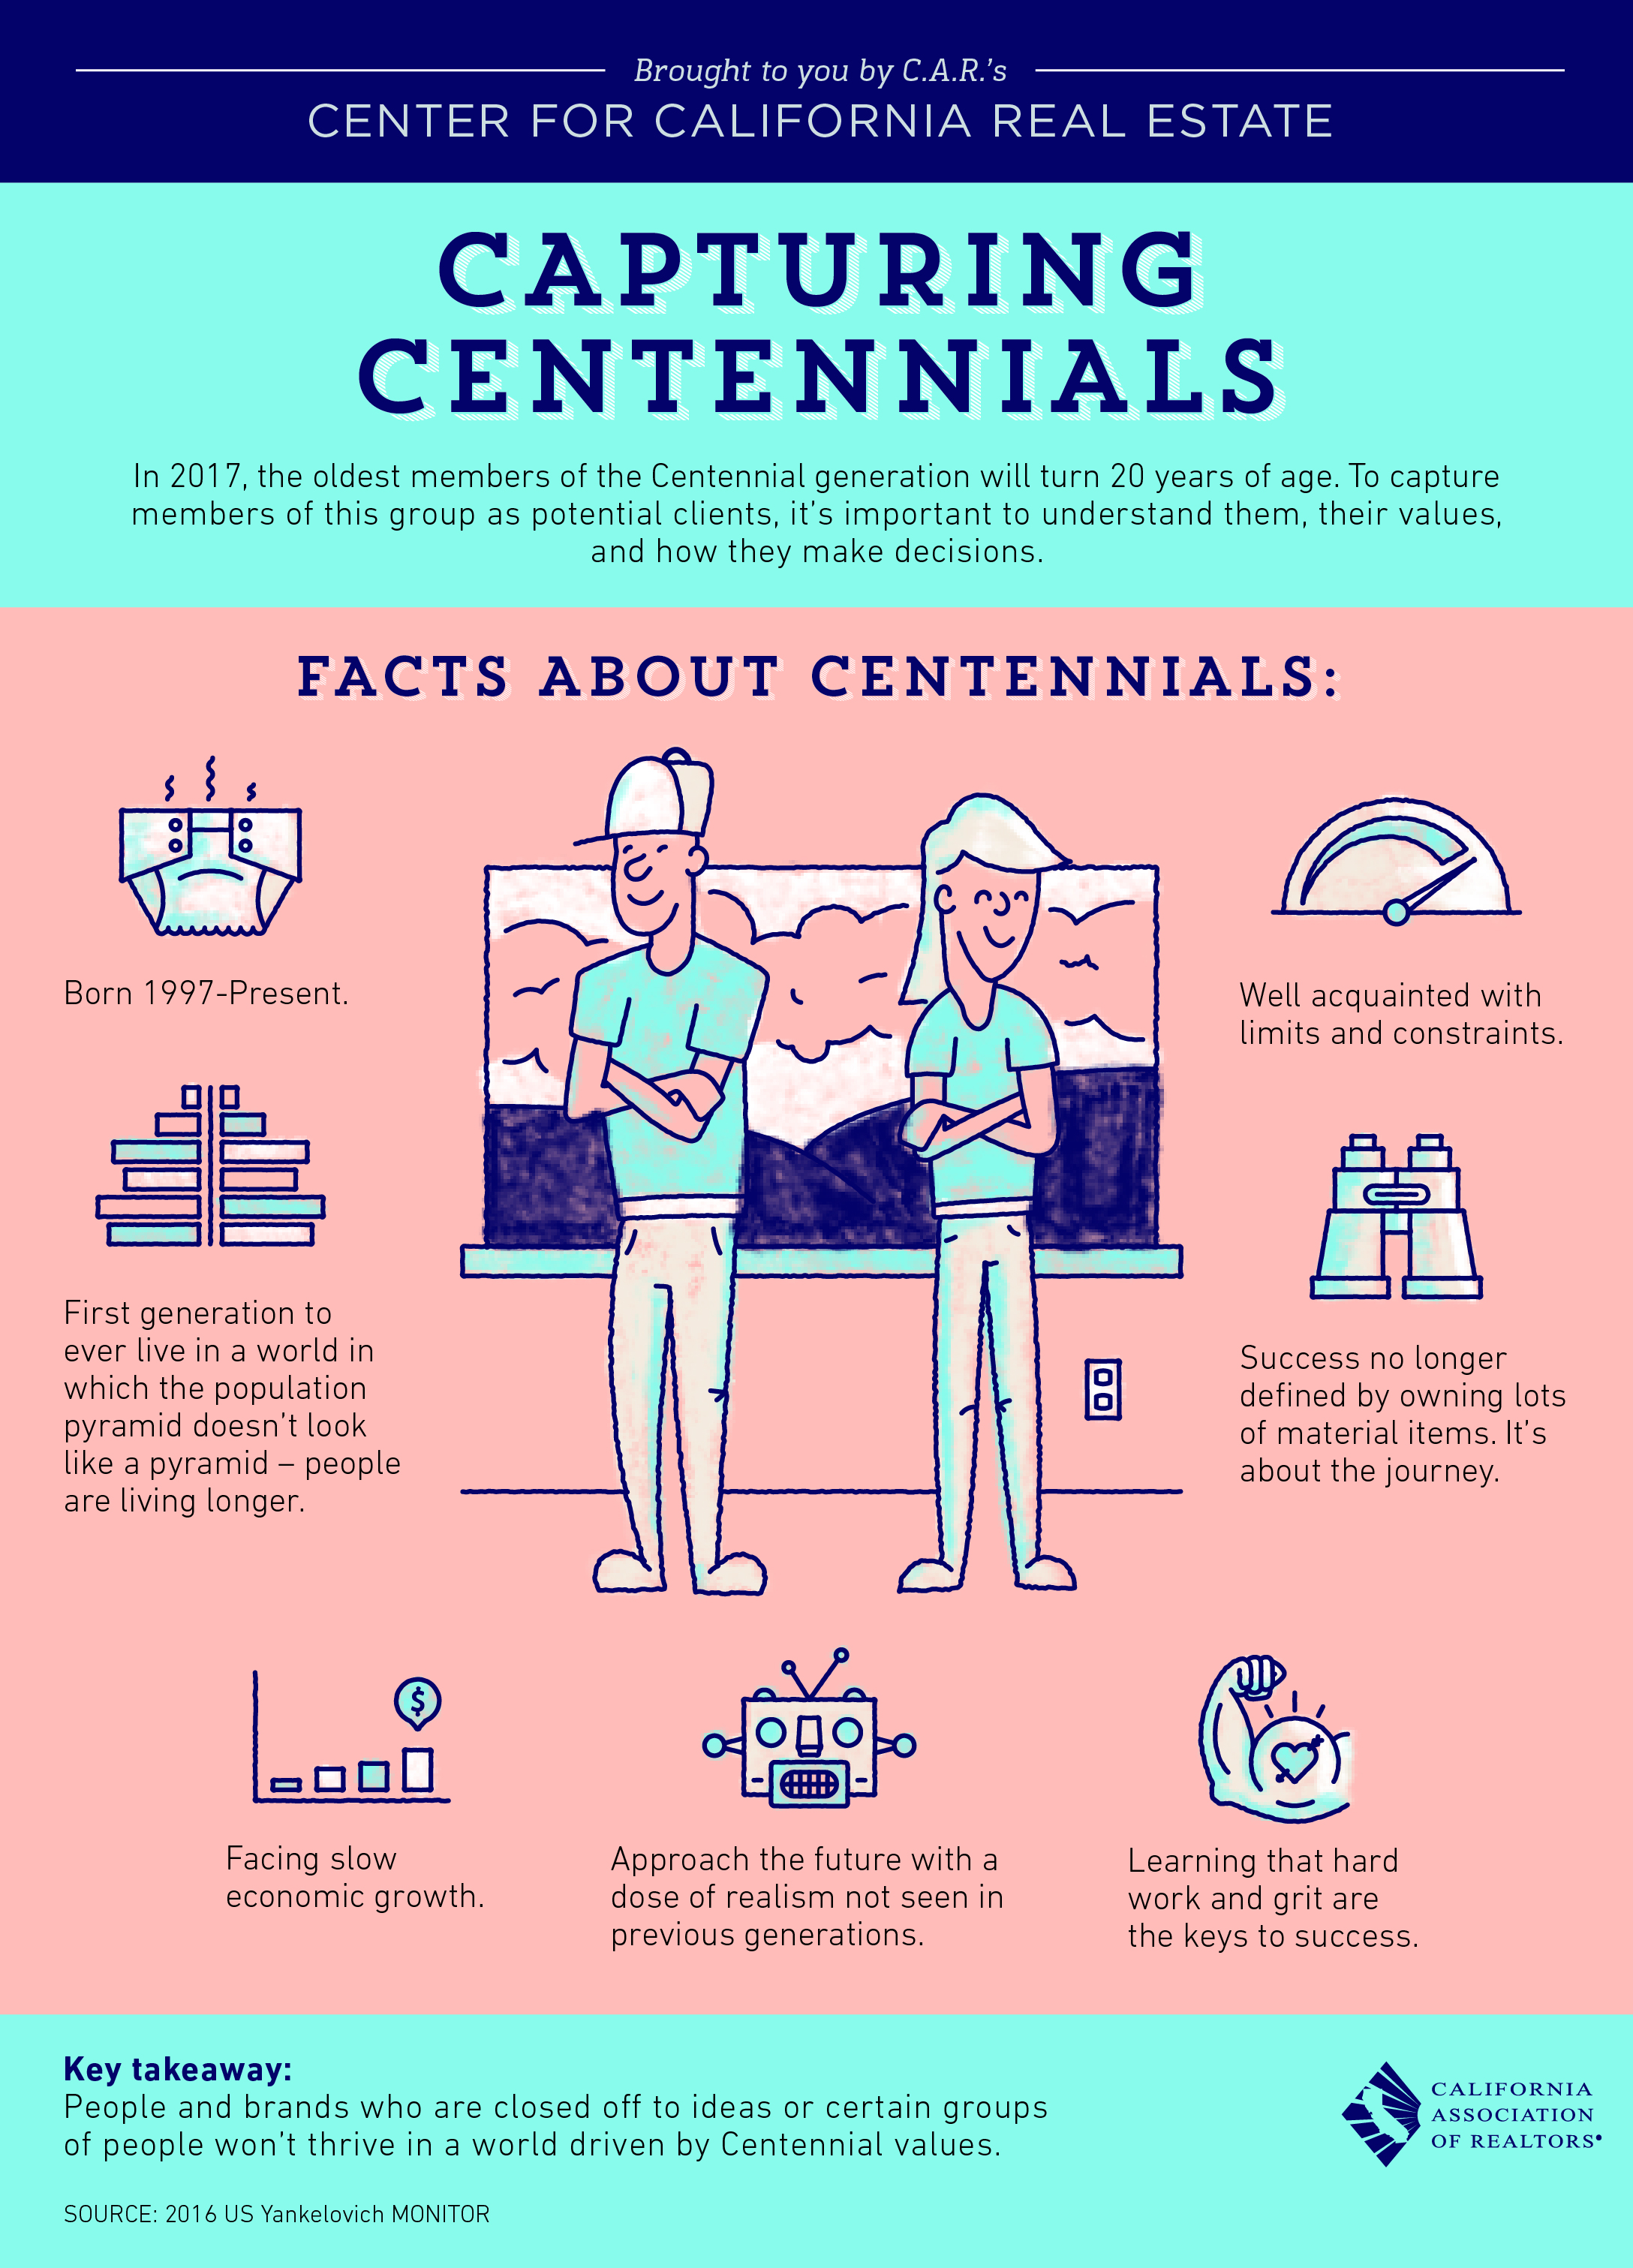 In 2017, the oldest members of the Centennial generation will turn 20 years of age. To capture members of this group as potential clients, it's important to understand them, their values, and how they make decisions.